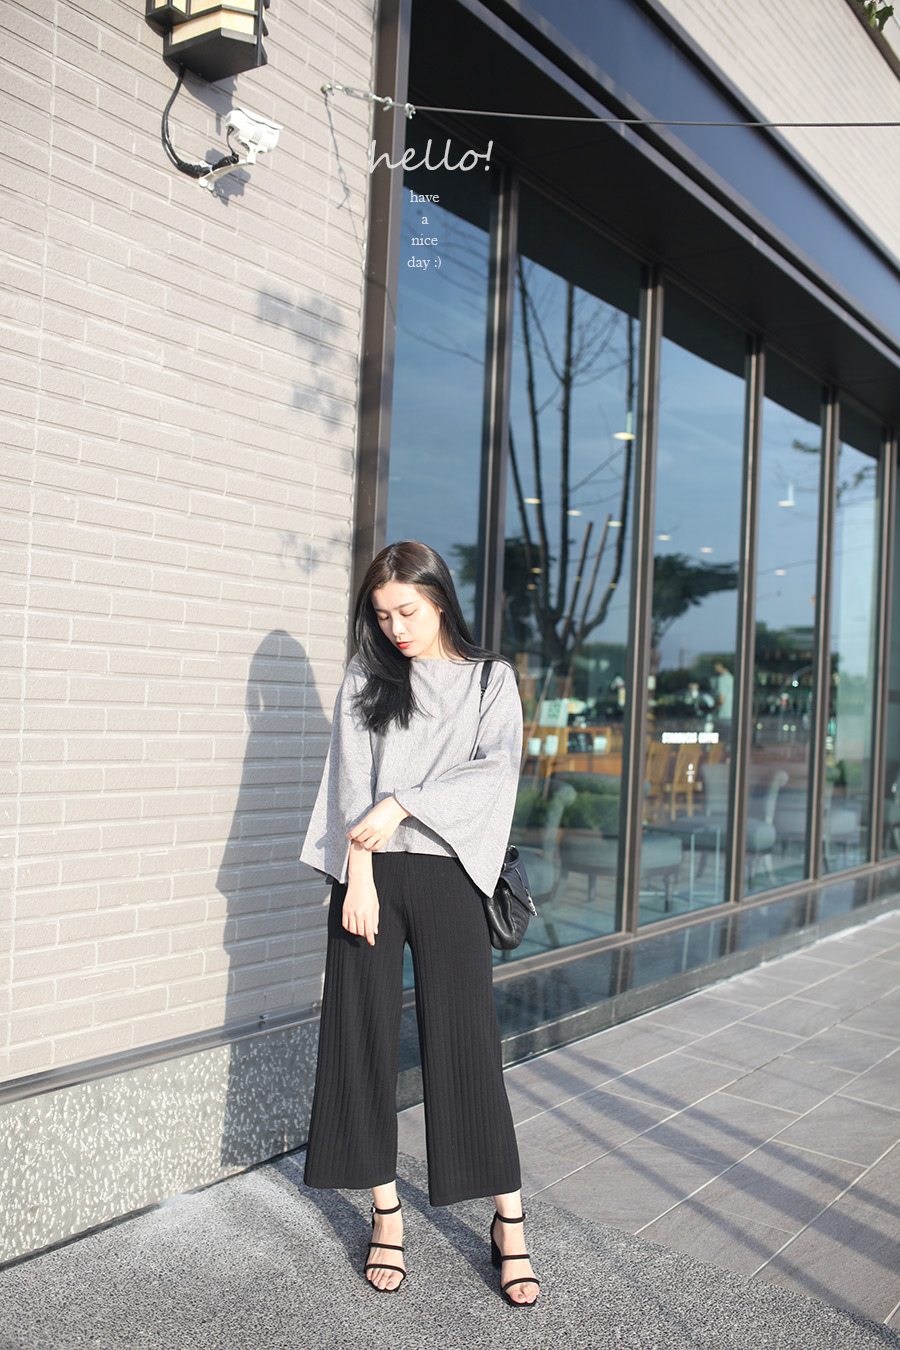 taobao - autumn - outfit - 35